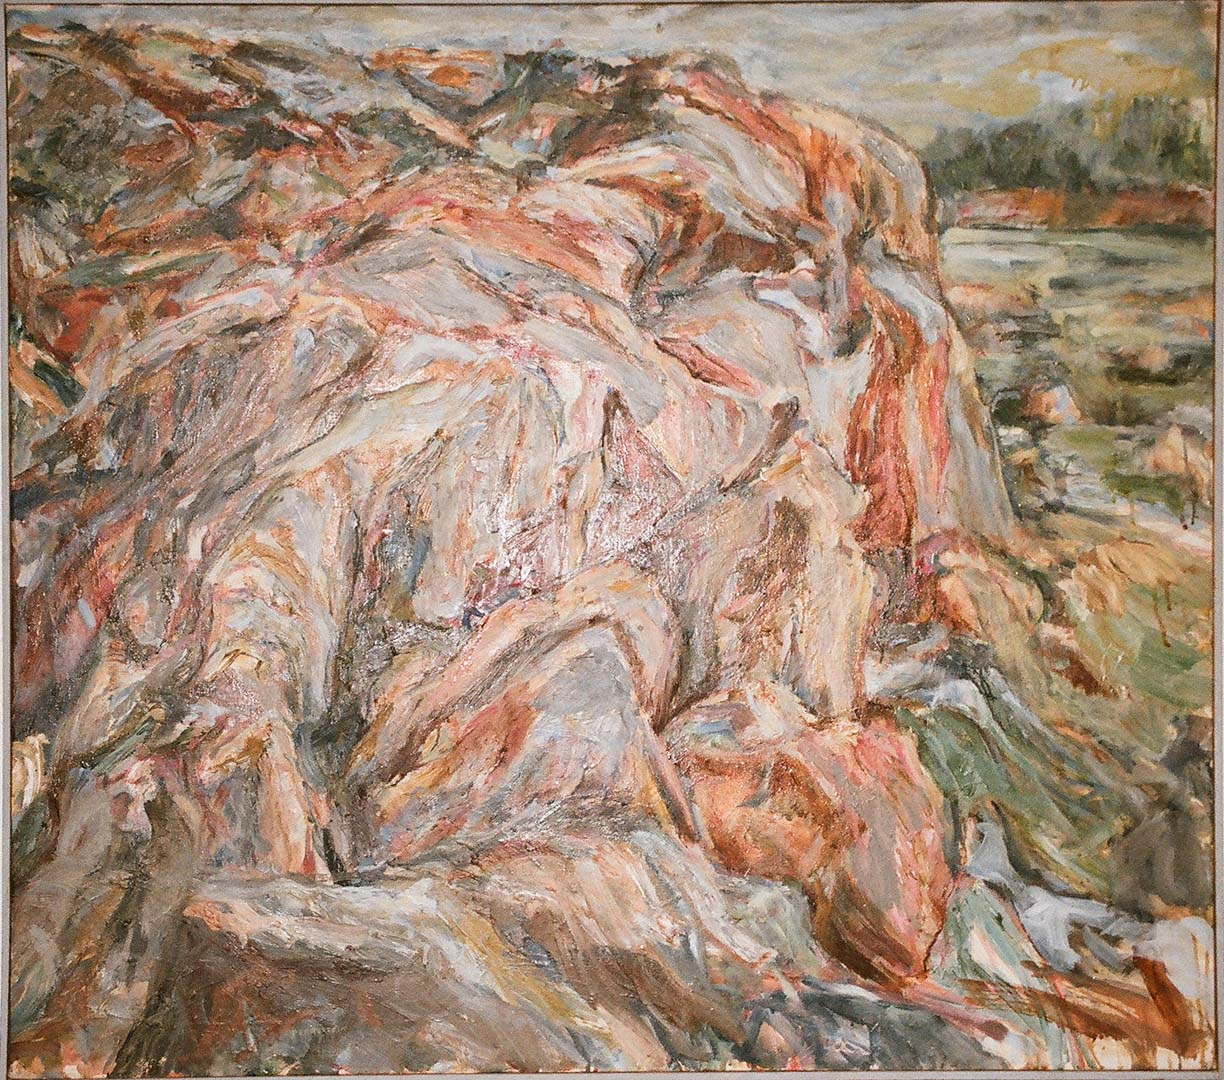 1955 Cliff and Sea Oil on Canvas 36 x 39.375